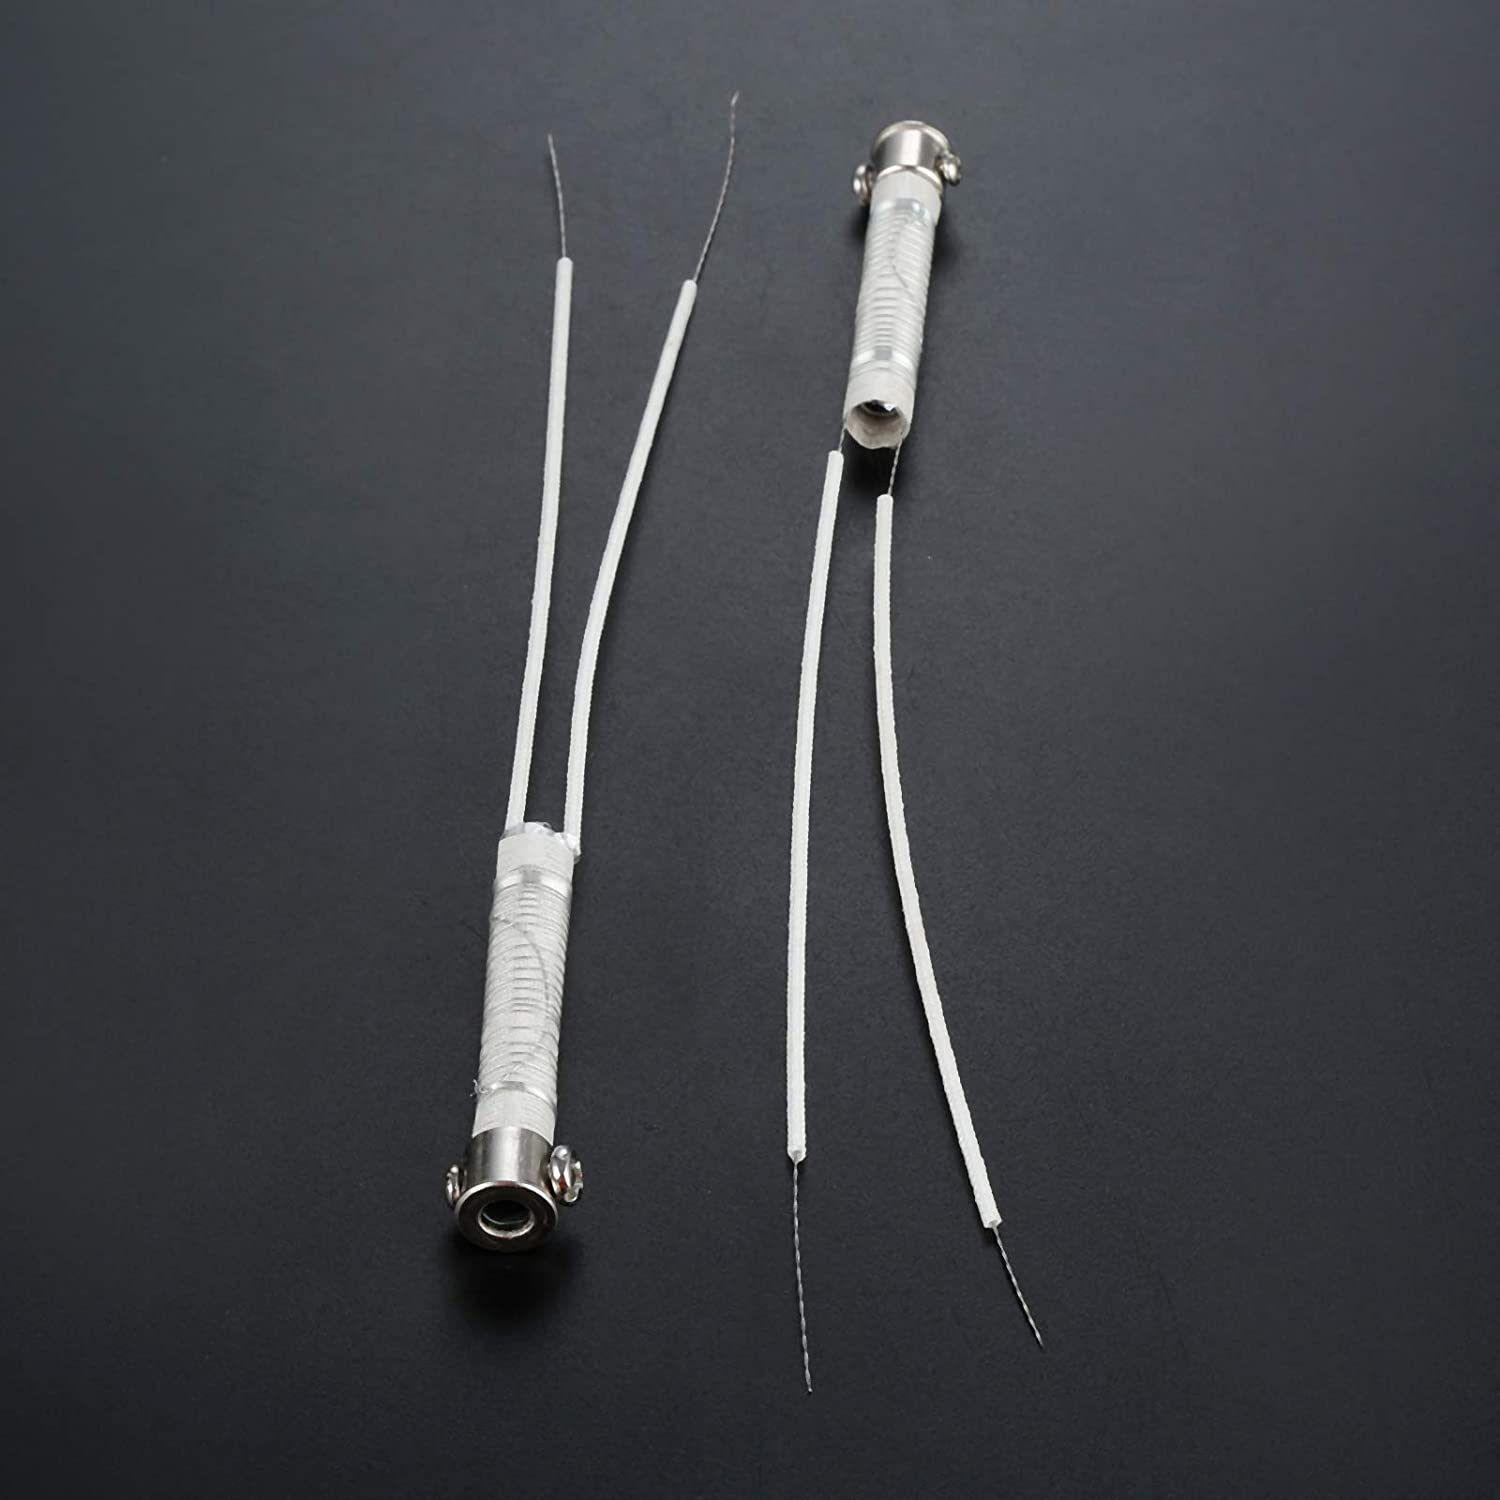 2pcs 220V 80W Welder Electric Soldering Iron Wired Heat Element Core Replacement